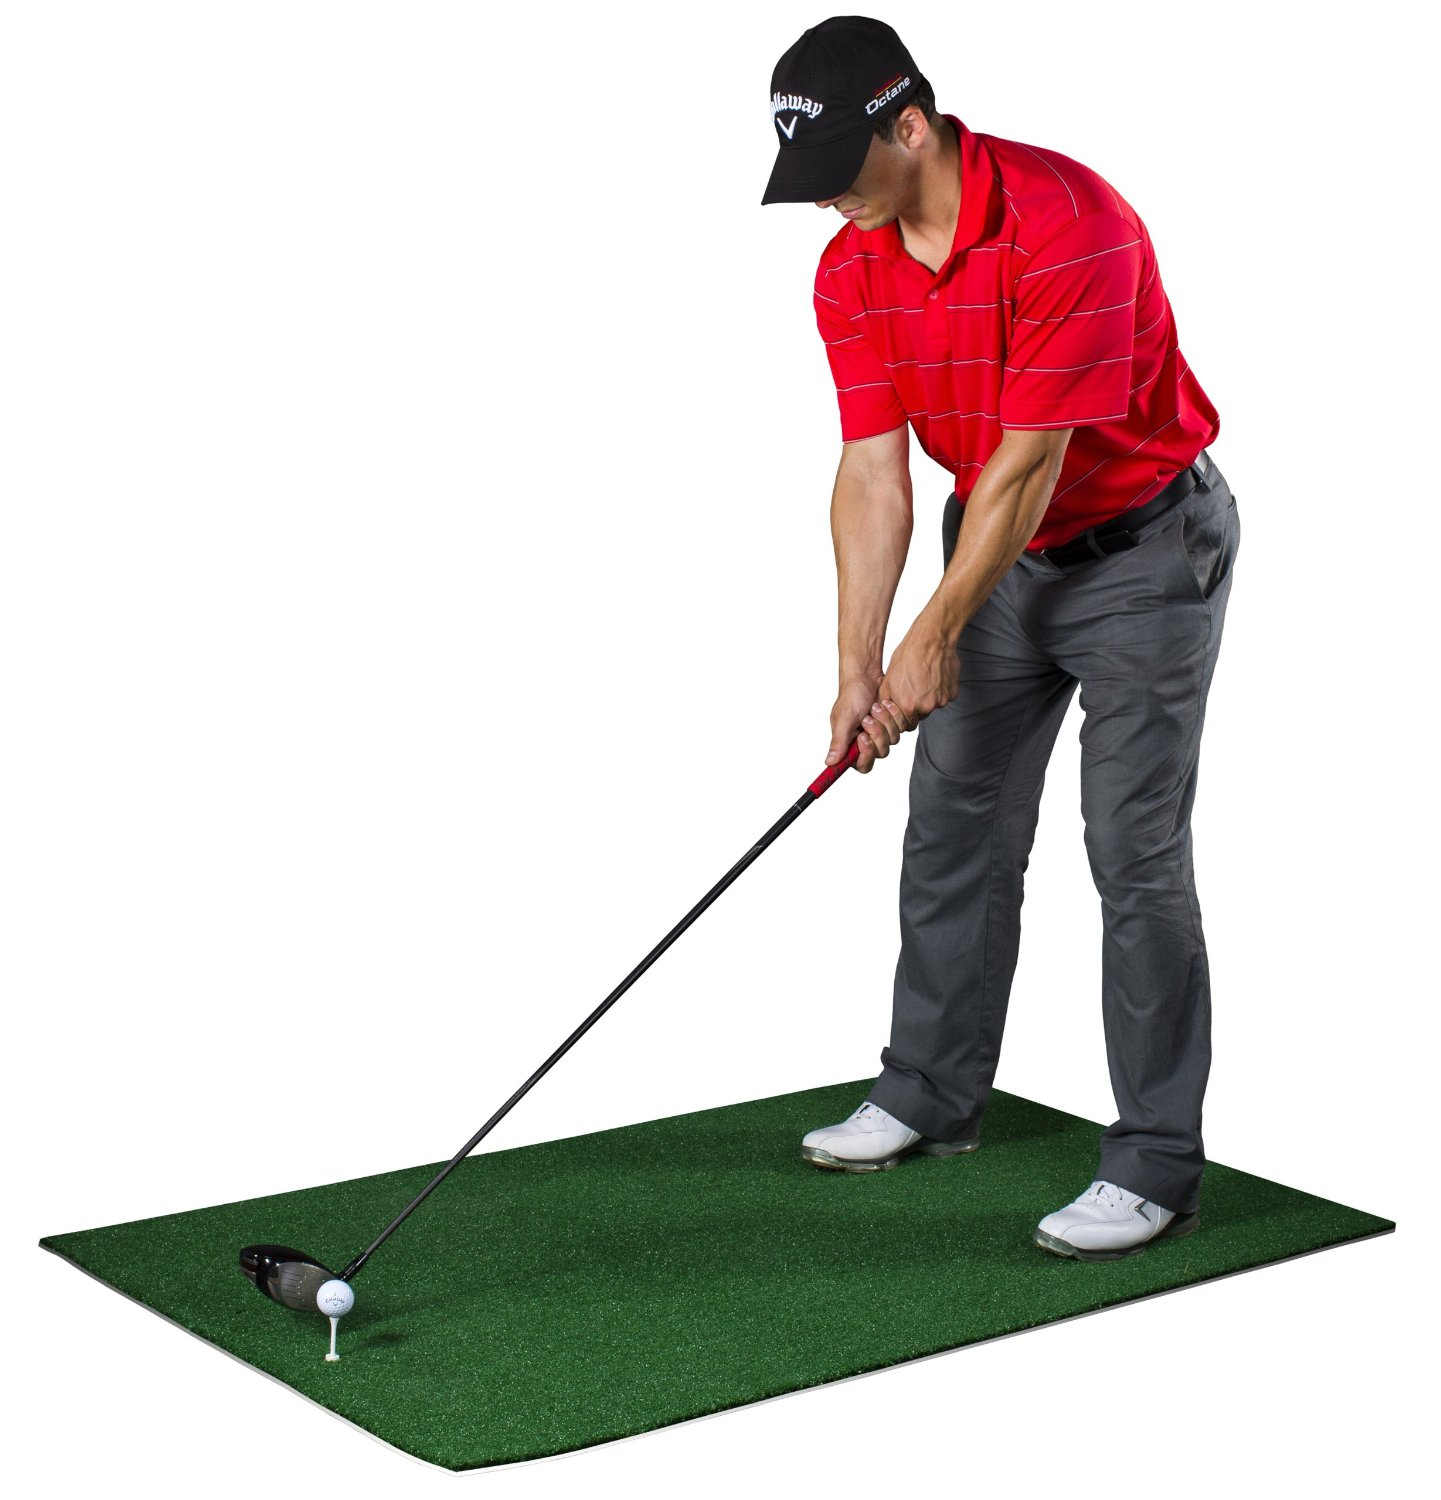 Buy Golf Practice Hitting Driving Amp Chipping Mats